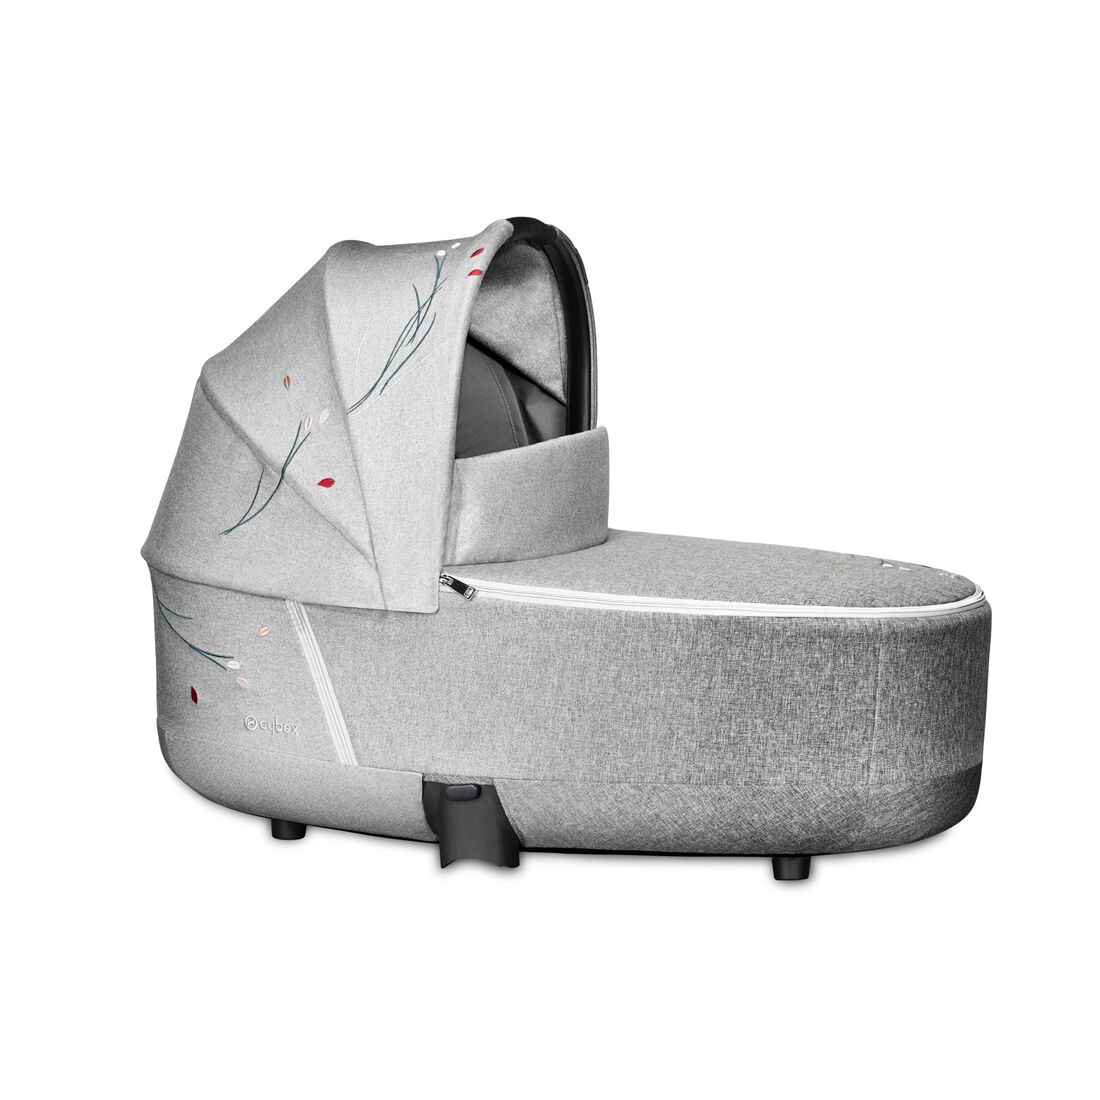 CYBEX Priam Lux Carry Cot - Koi in Koi large image number 1